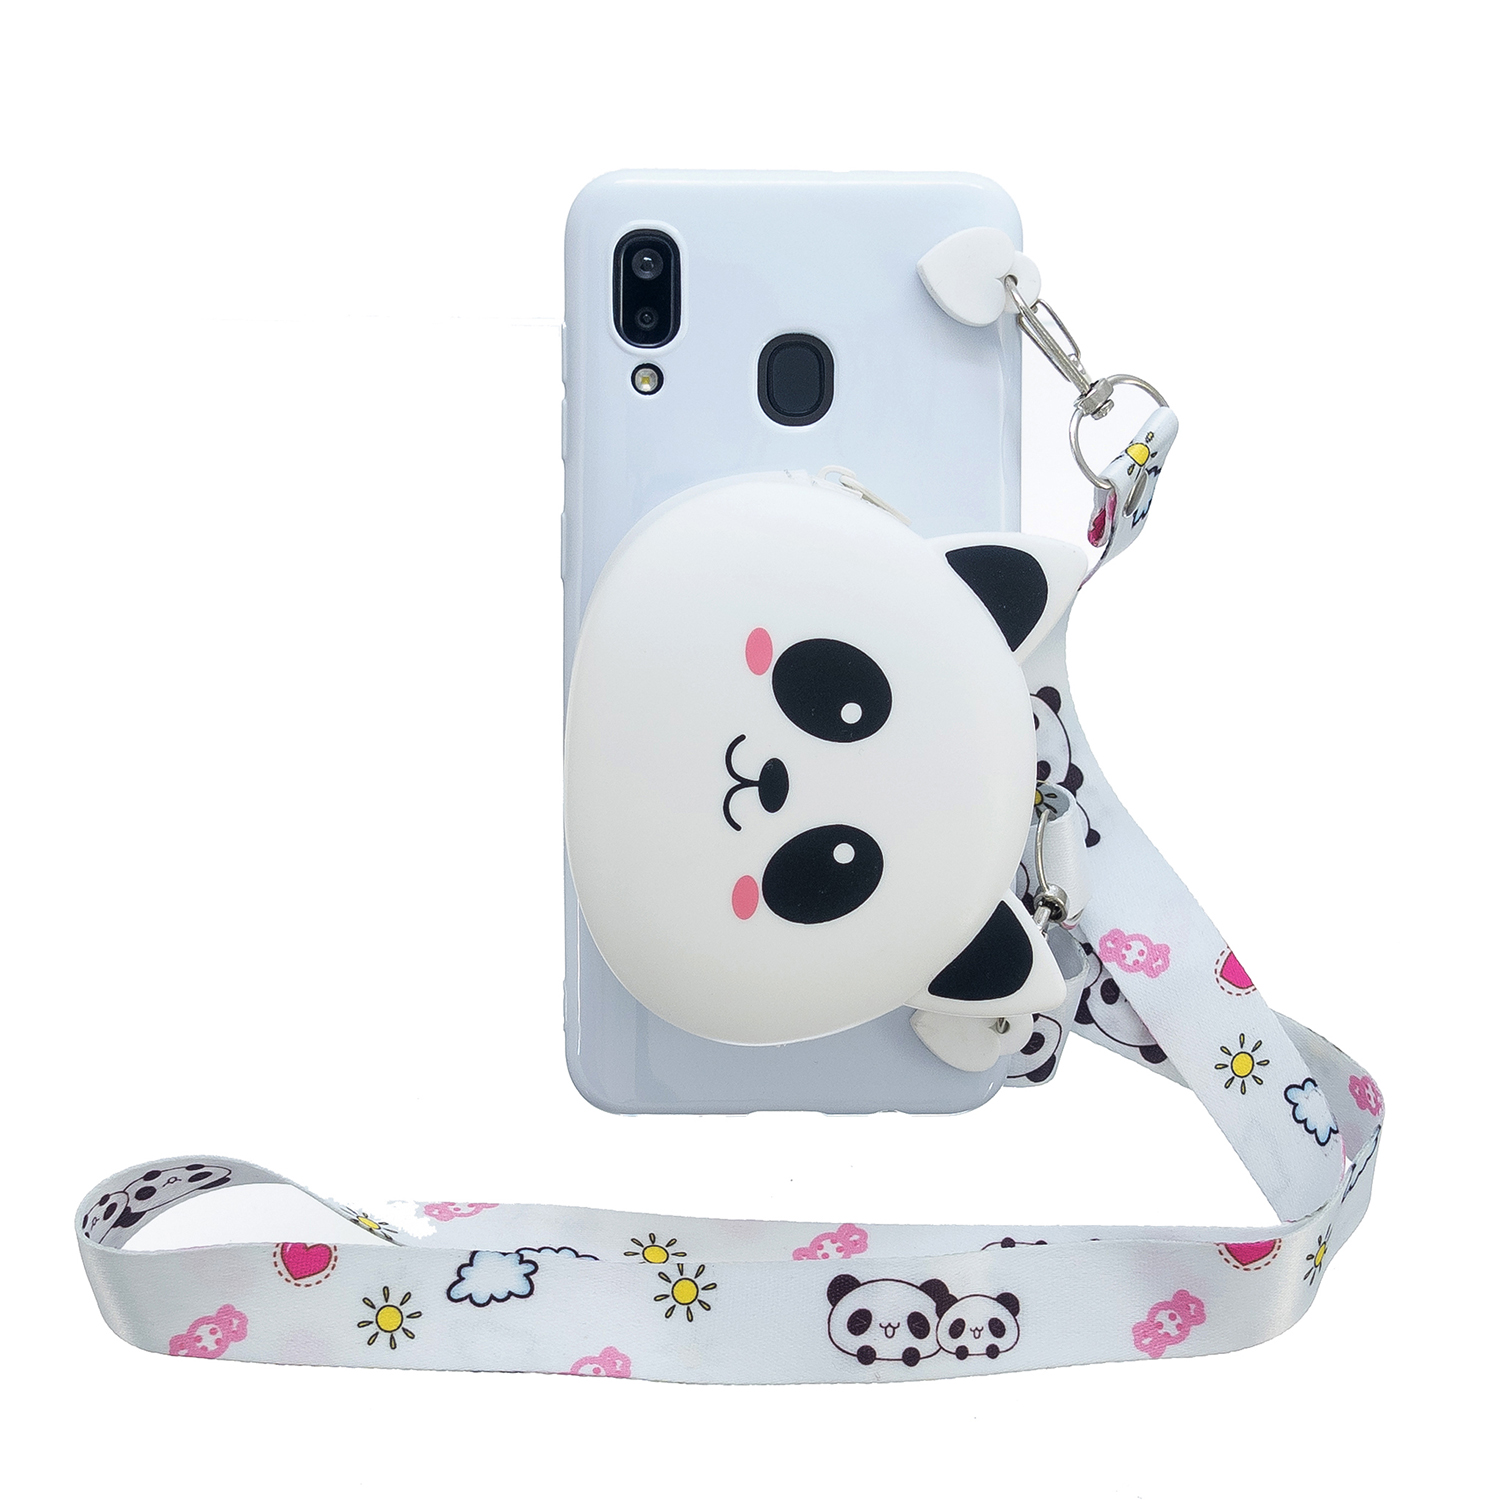 For Samsung A10/A20/A30 Case Mobile Phone Shell Shockproof TPU Cellphone Cover with Cartoon Cat Pig Panda Coin Purse Lovely Shoulder Starp  White